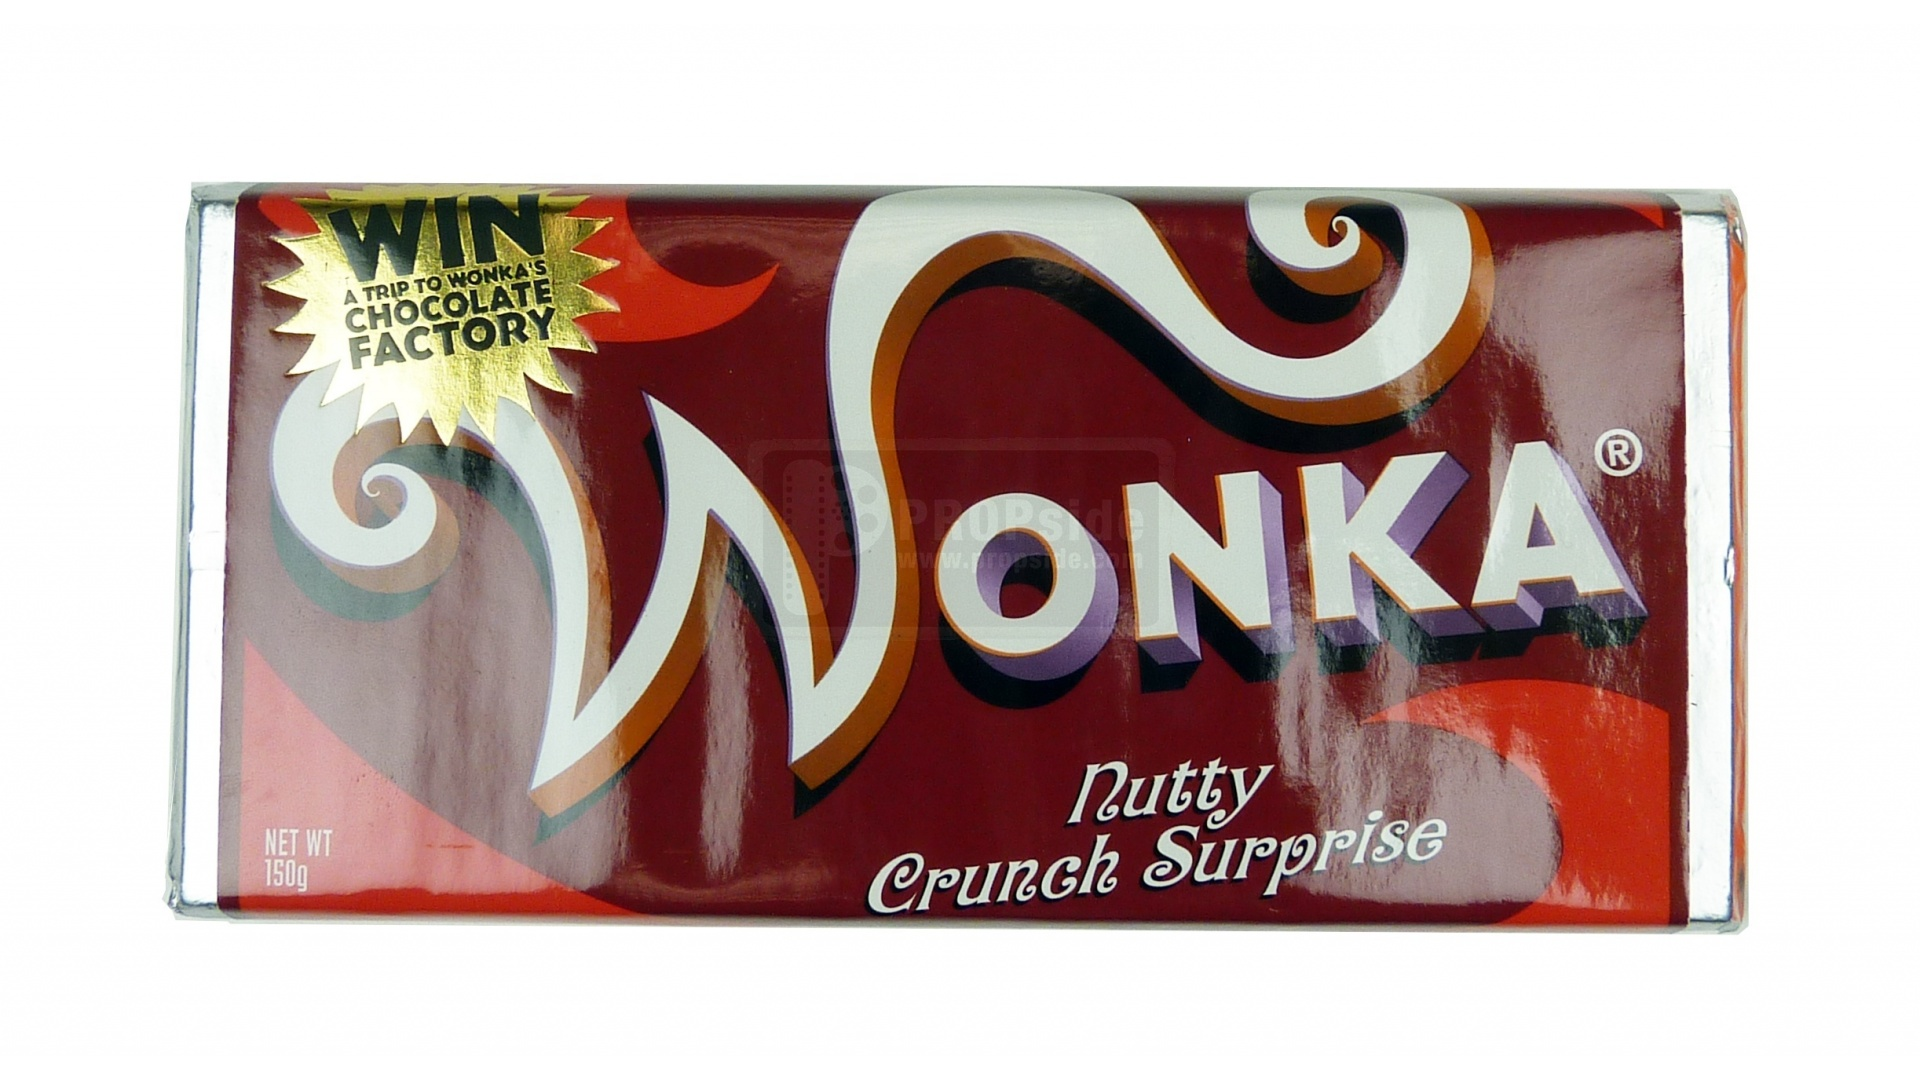 U555u | Images: Willy Wonka Candy Bar